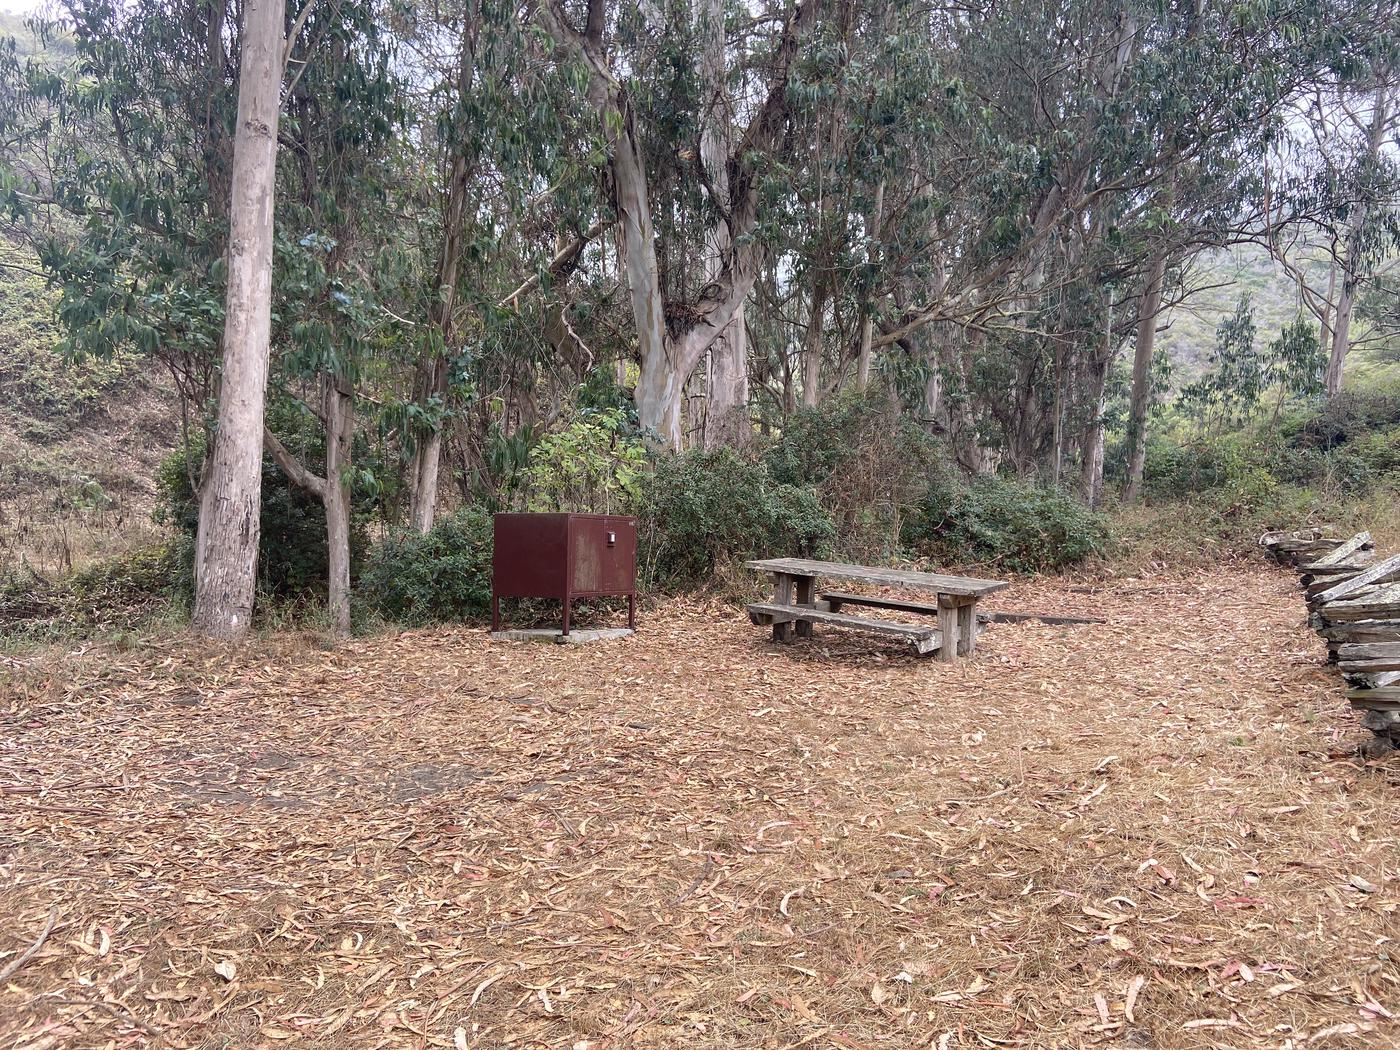 Campsite 5, with a food locker, a picnic table, and two tent padsCampsite 5